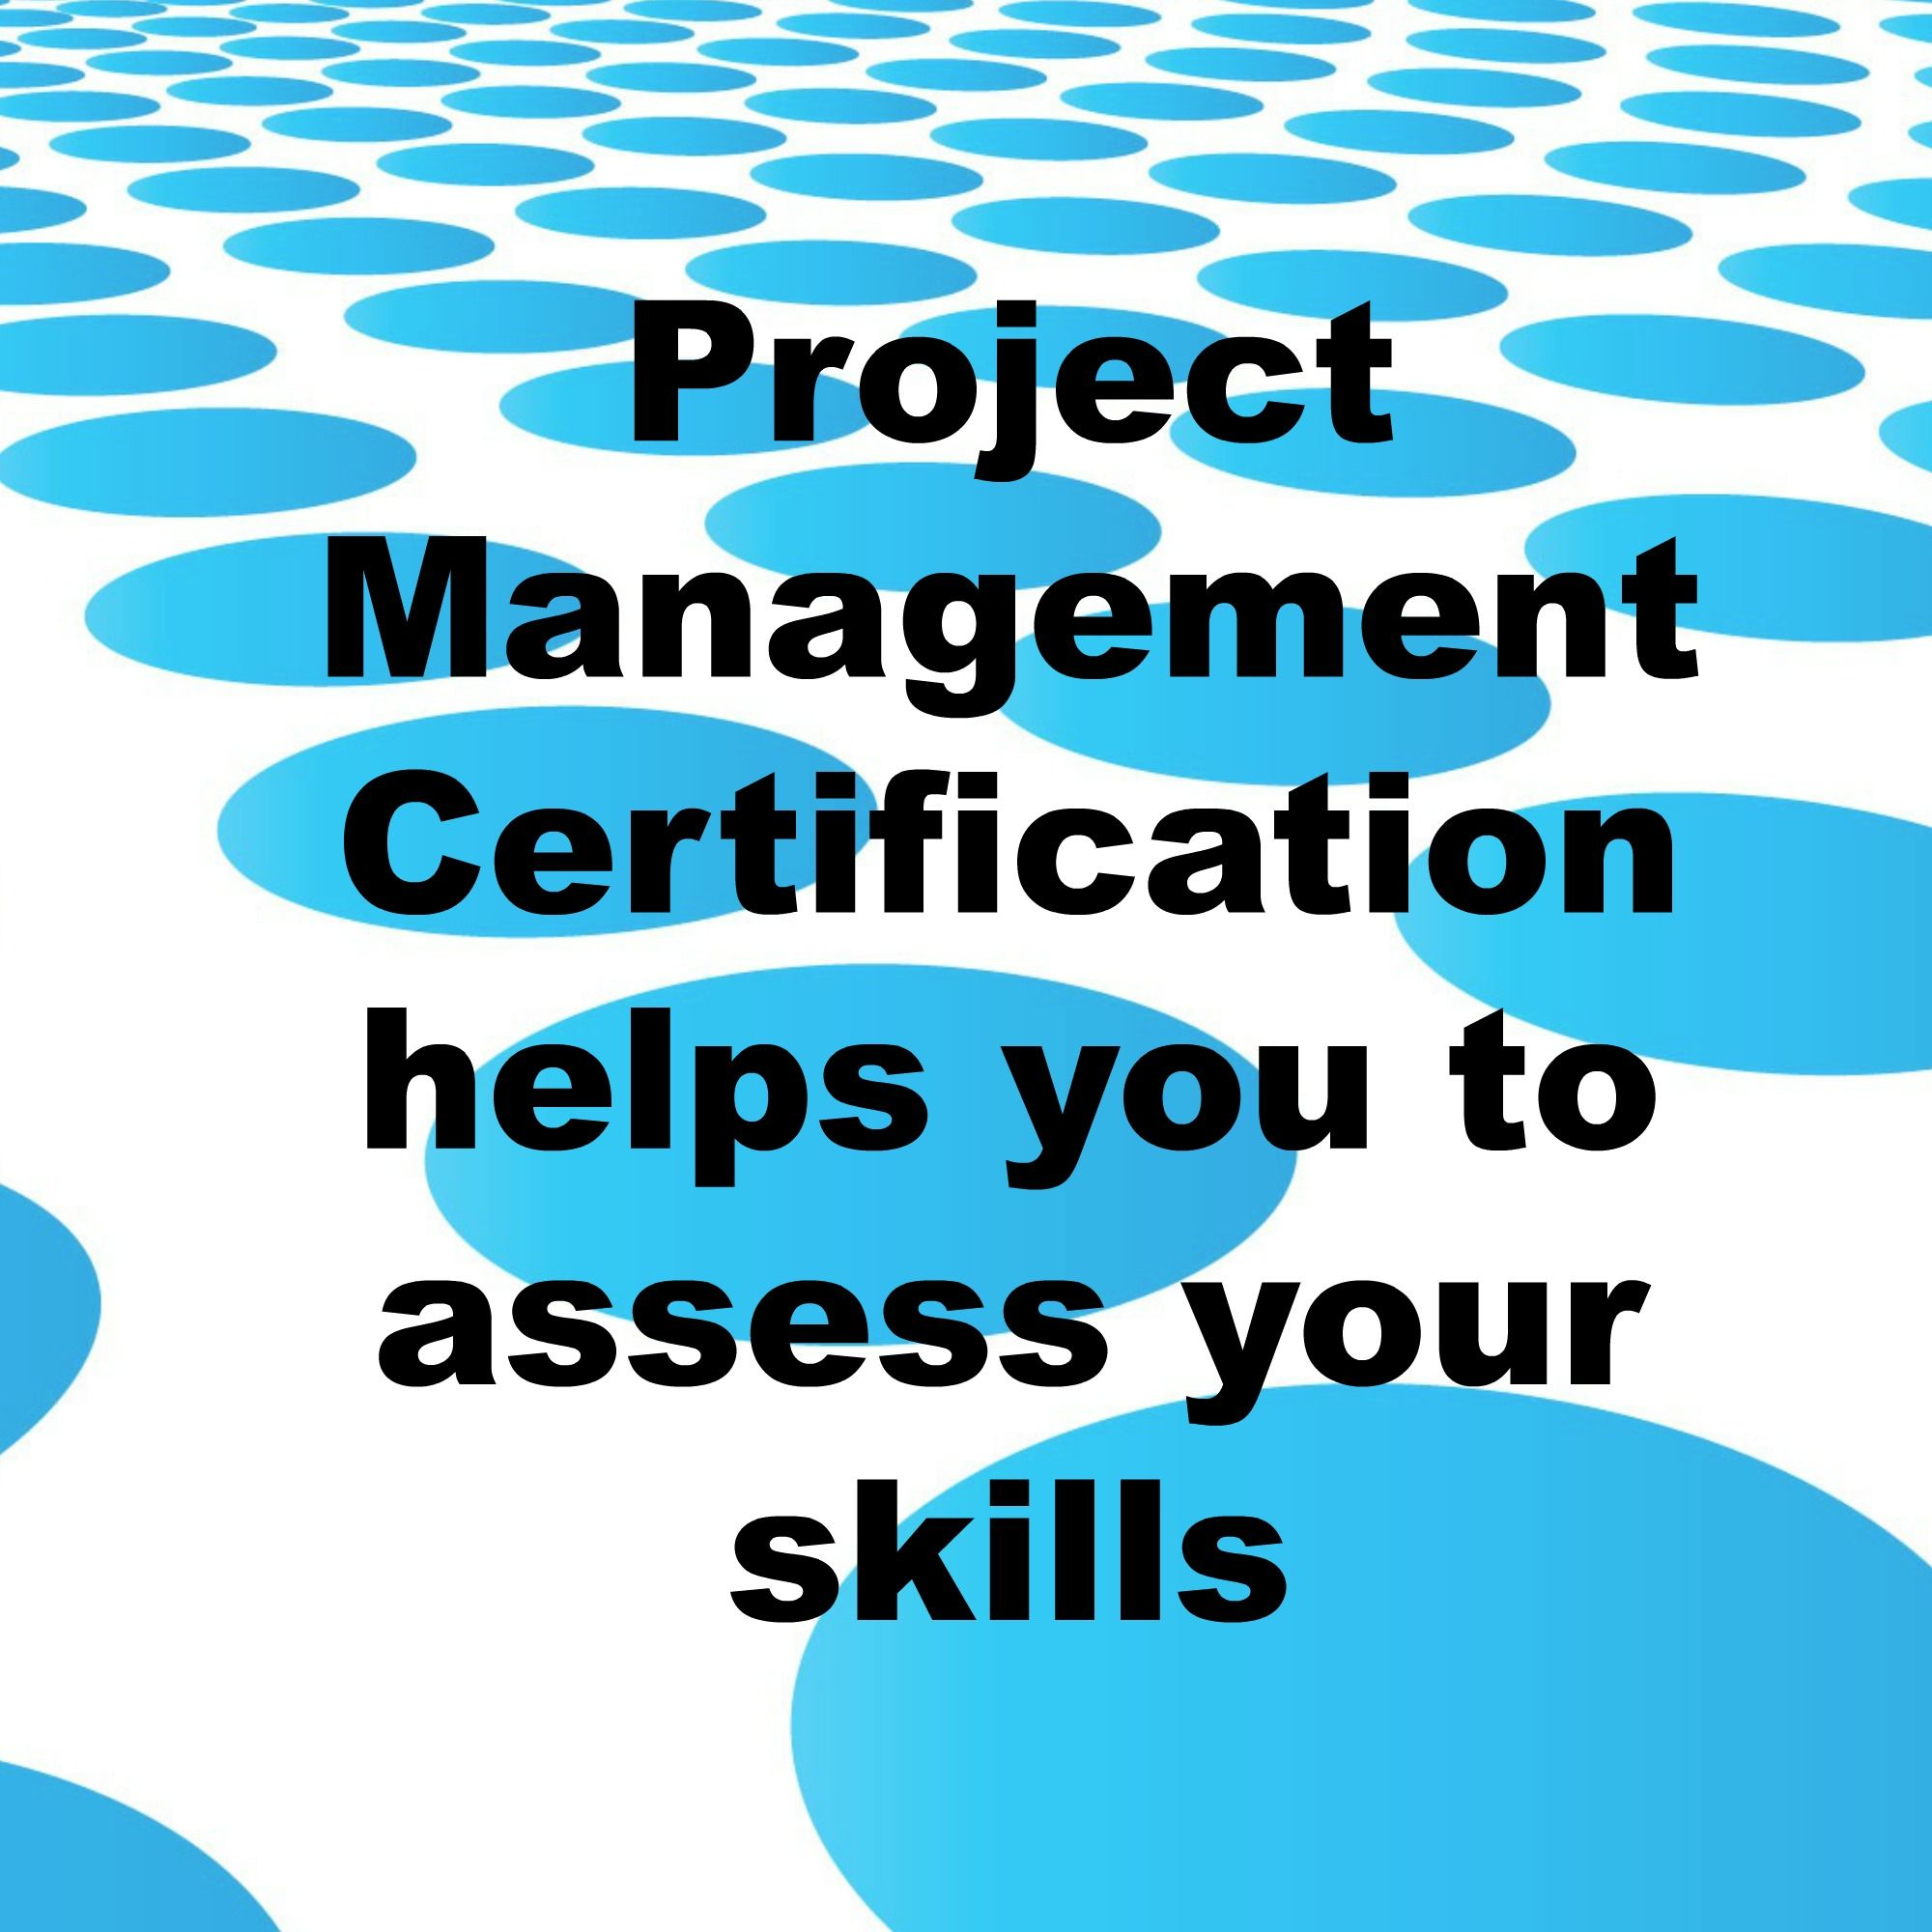 Project management certification provides an ideal opportunity to project management certification provides an ideal opportunity to assess your skills forming a great basis 1betcityfo Image collections